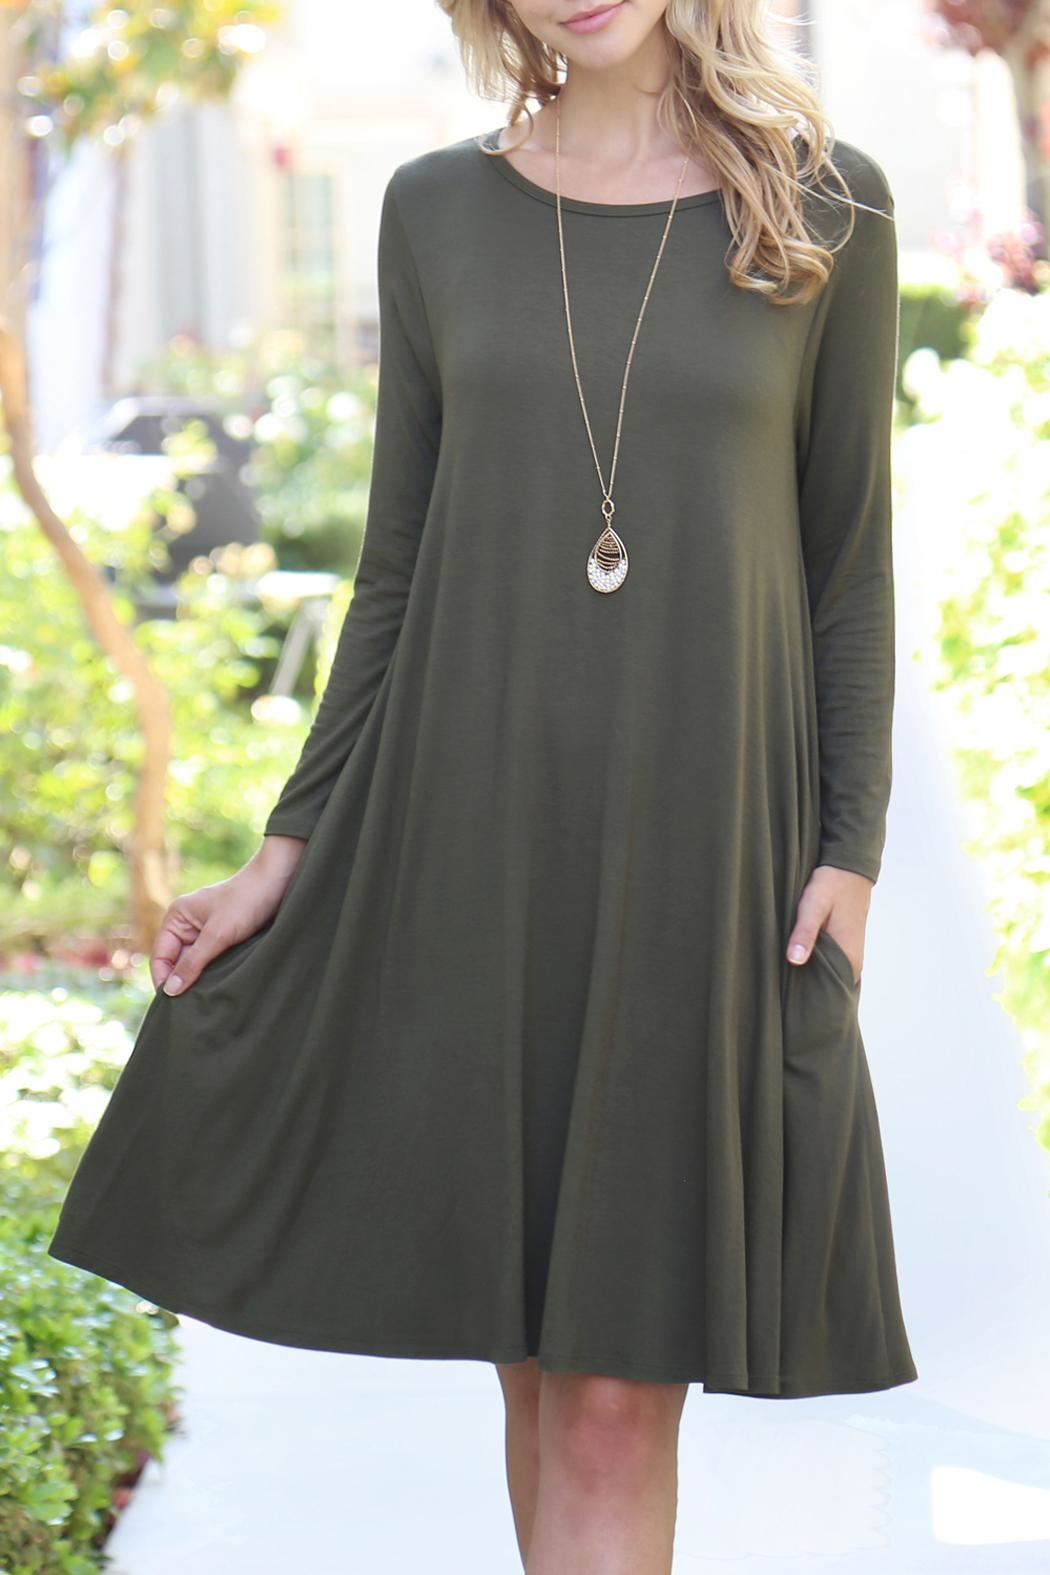 Riah Fashion 3/4-Sleeve-Solid-Rayon-Spandex Pocket Dress - Front Cropped Image